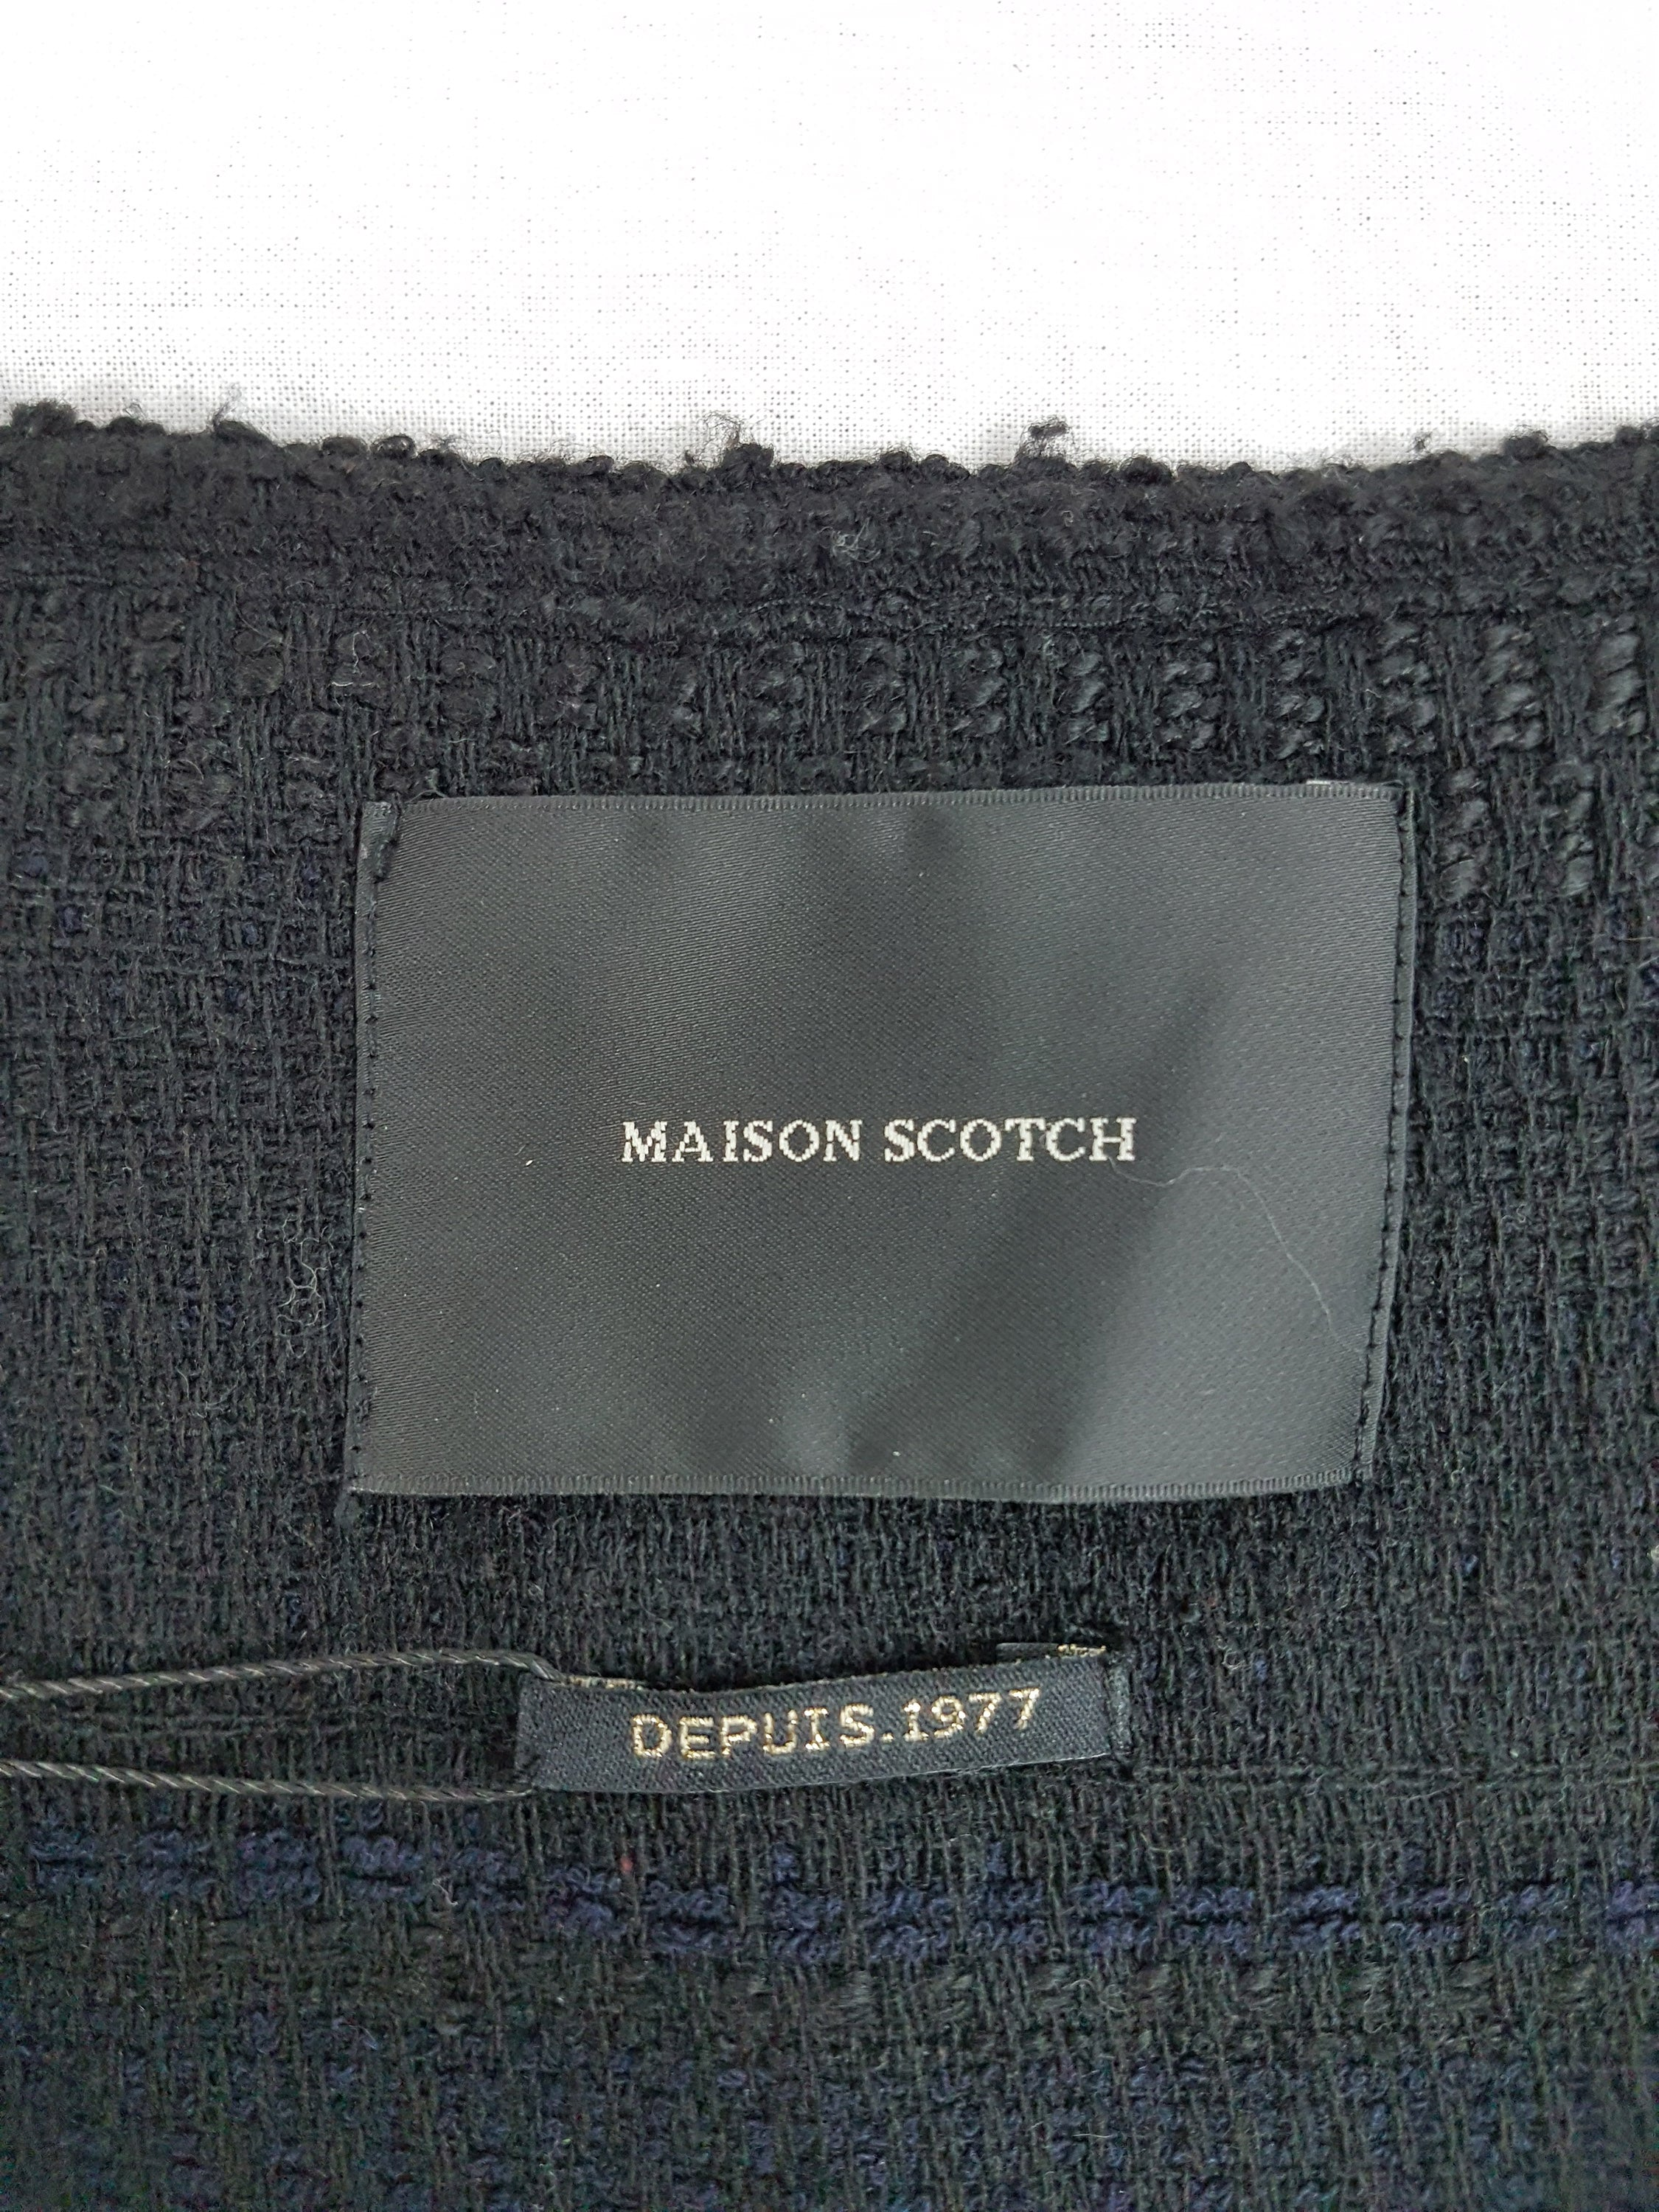 Cardigan Maison Scotch – Boutique Popeline -  Friperie, Seconde main & Consignation - Montréal, Plateau Mont-Royal